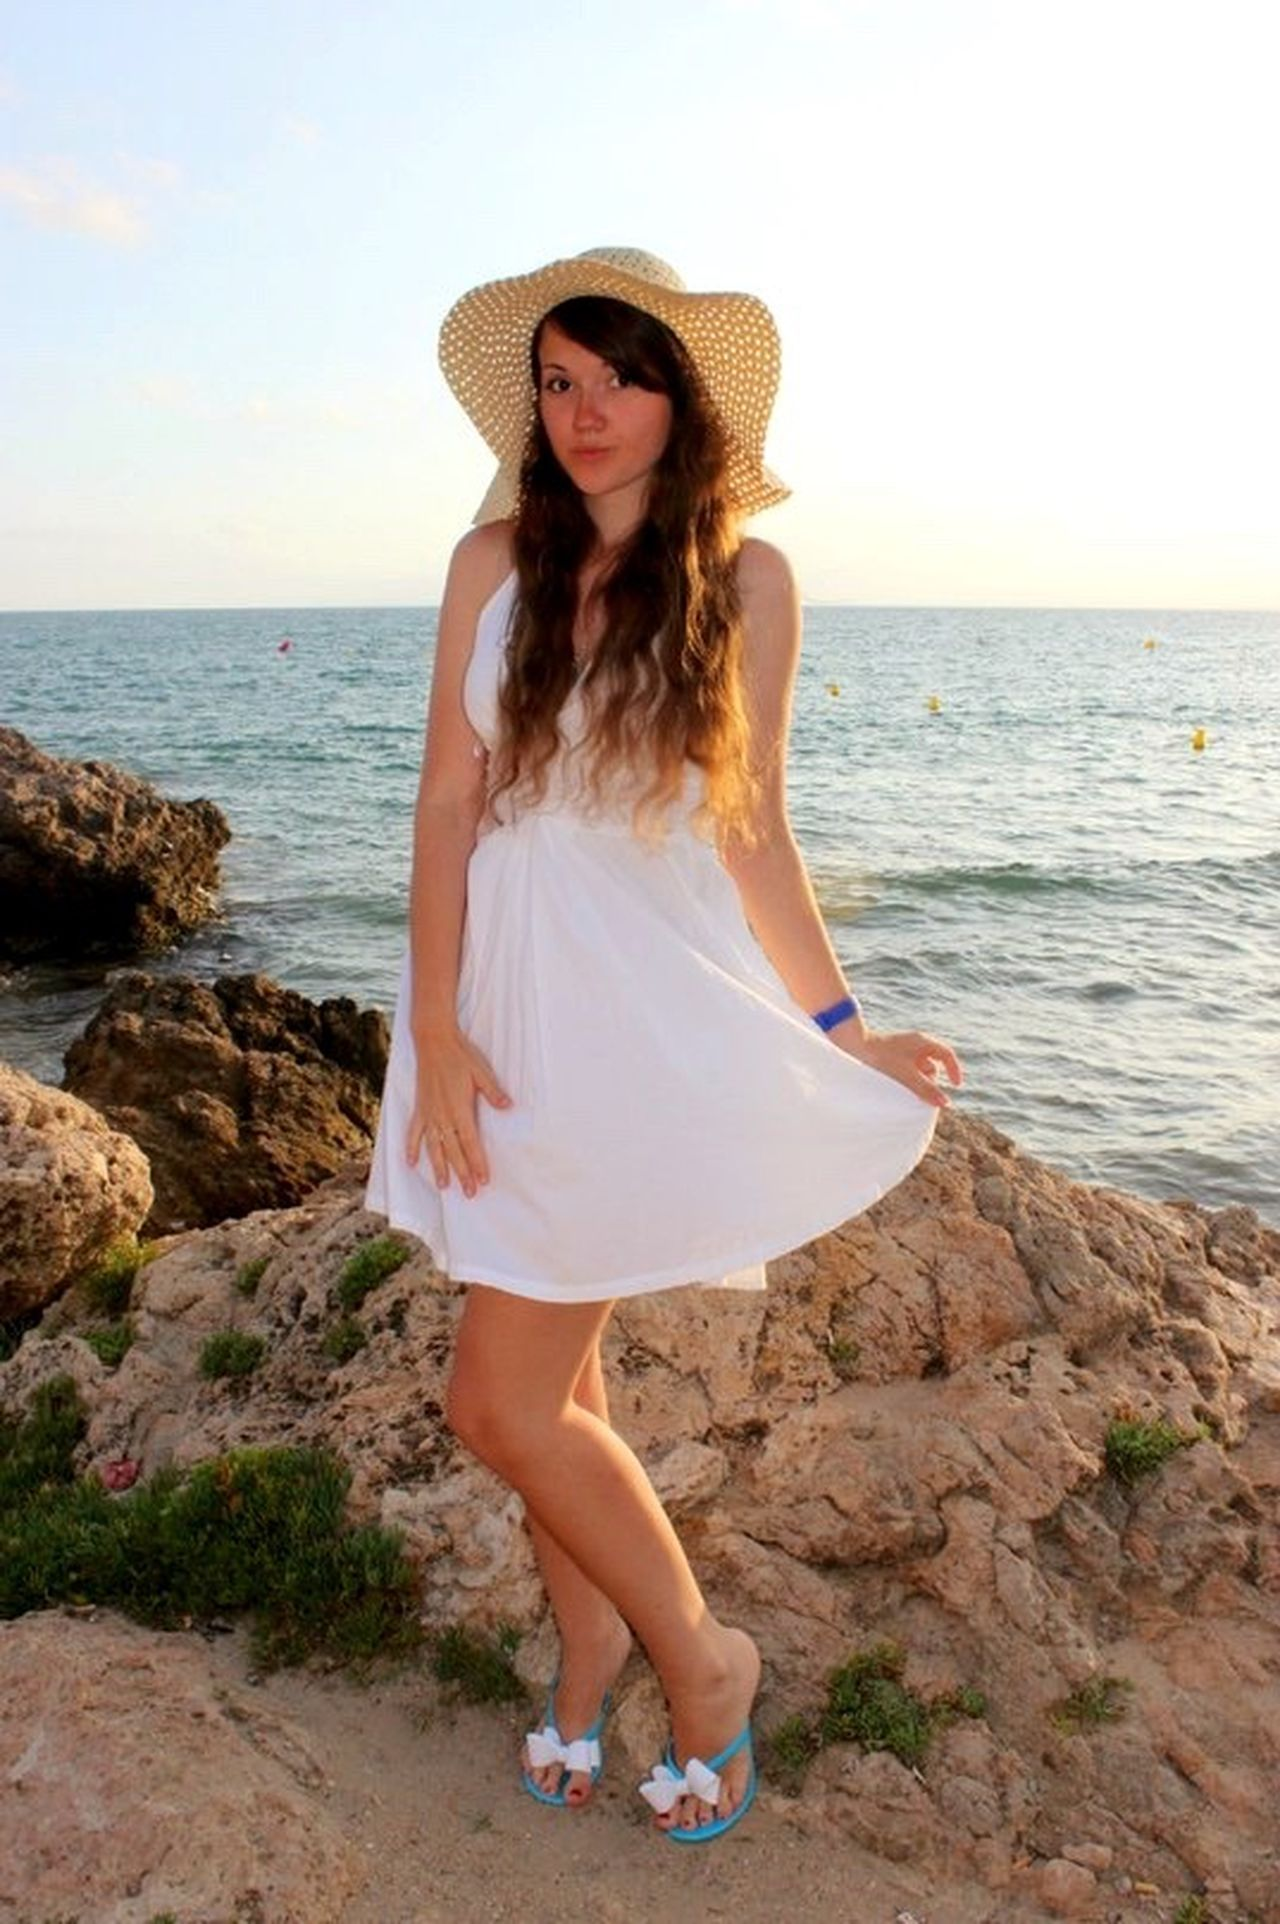 Russian Girl SPAIN Girl Sea Horizon Over Water Water Young Women Young Adult Standing Full Length Long Hair Vacations Person Dress Lifestyles Front View Leisure Activity Beach Scenics Tranquil Scene Nature Shore Big Hat White Dress